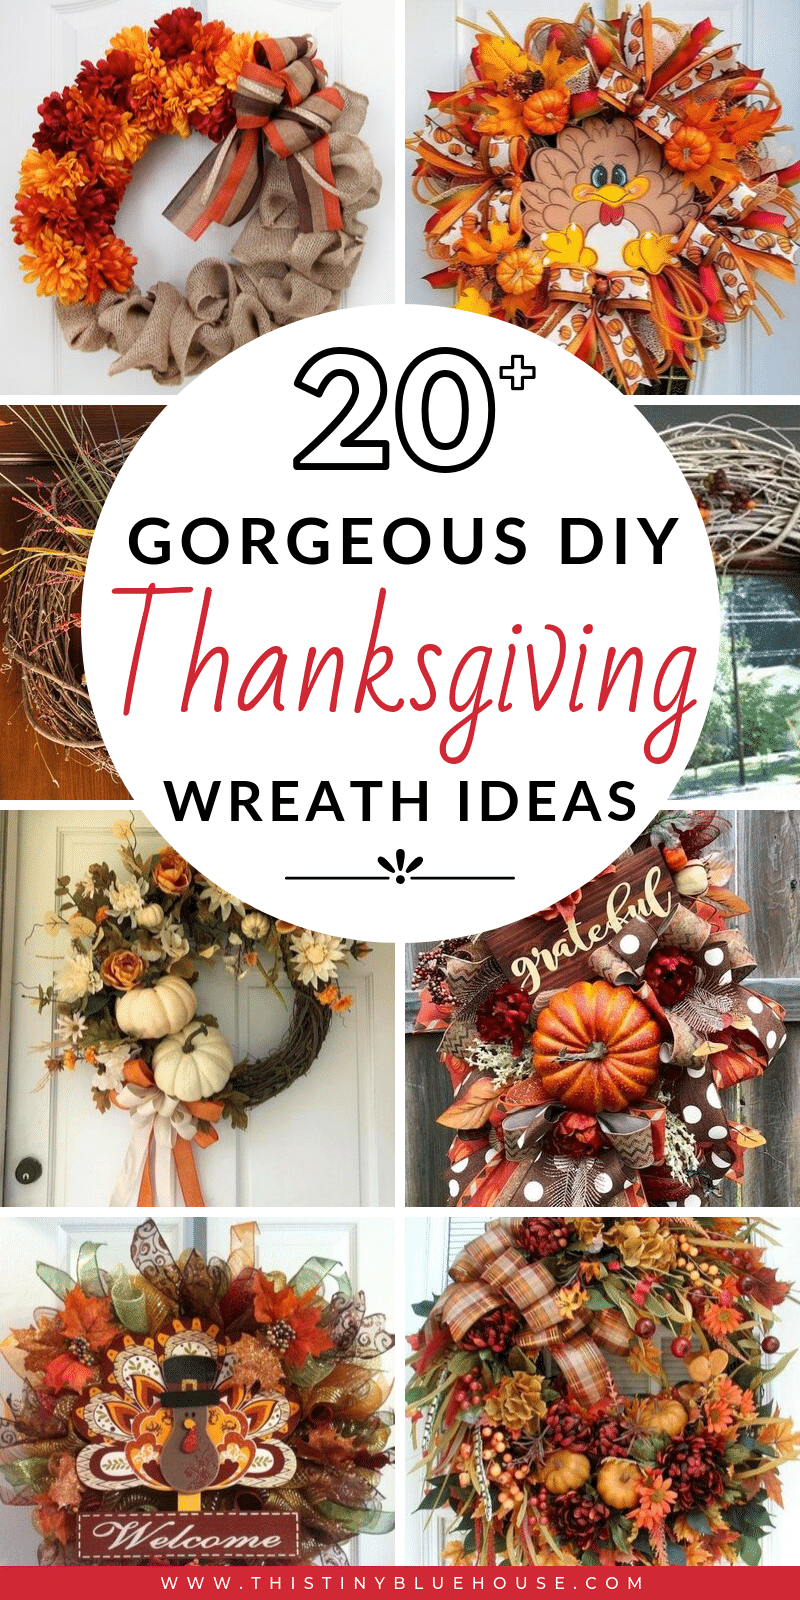 Are you looking for a gorgeous rustic Thanksgiving wreath for your front door? Here are 30 best wreaths that are a festive way to decorate for Thanksgiving. #thanksgivingdecor #thanksgivingwreaths #thanksgivingwreathdollarstore #rusticthanksgivingwreath #fallwreathideas